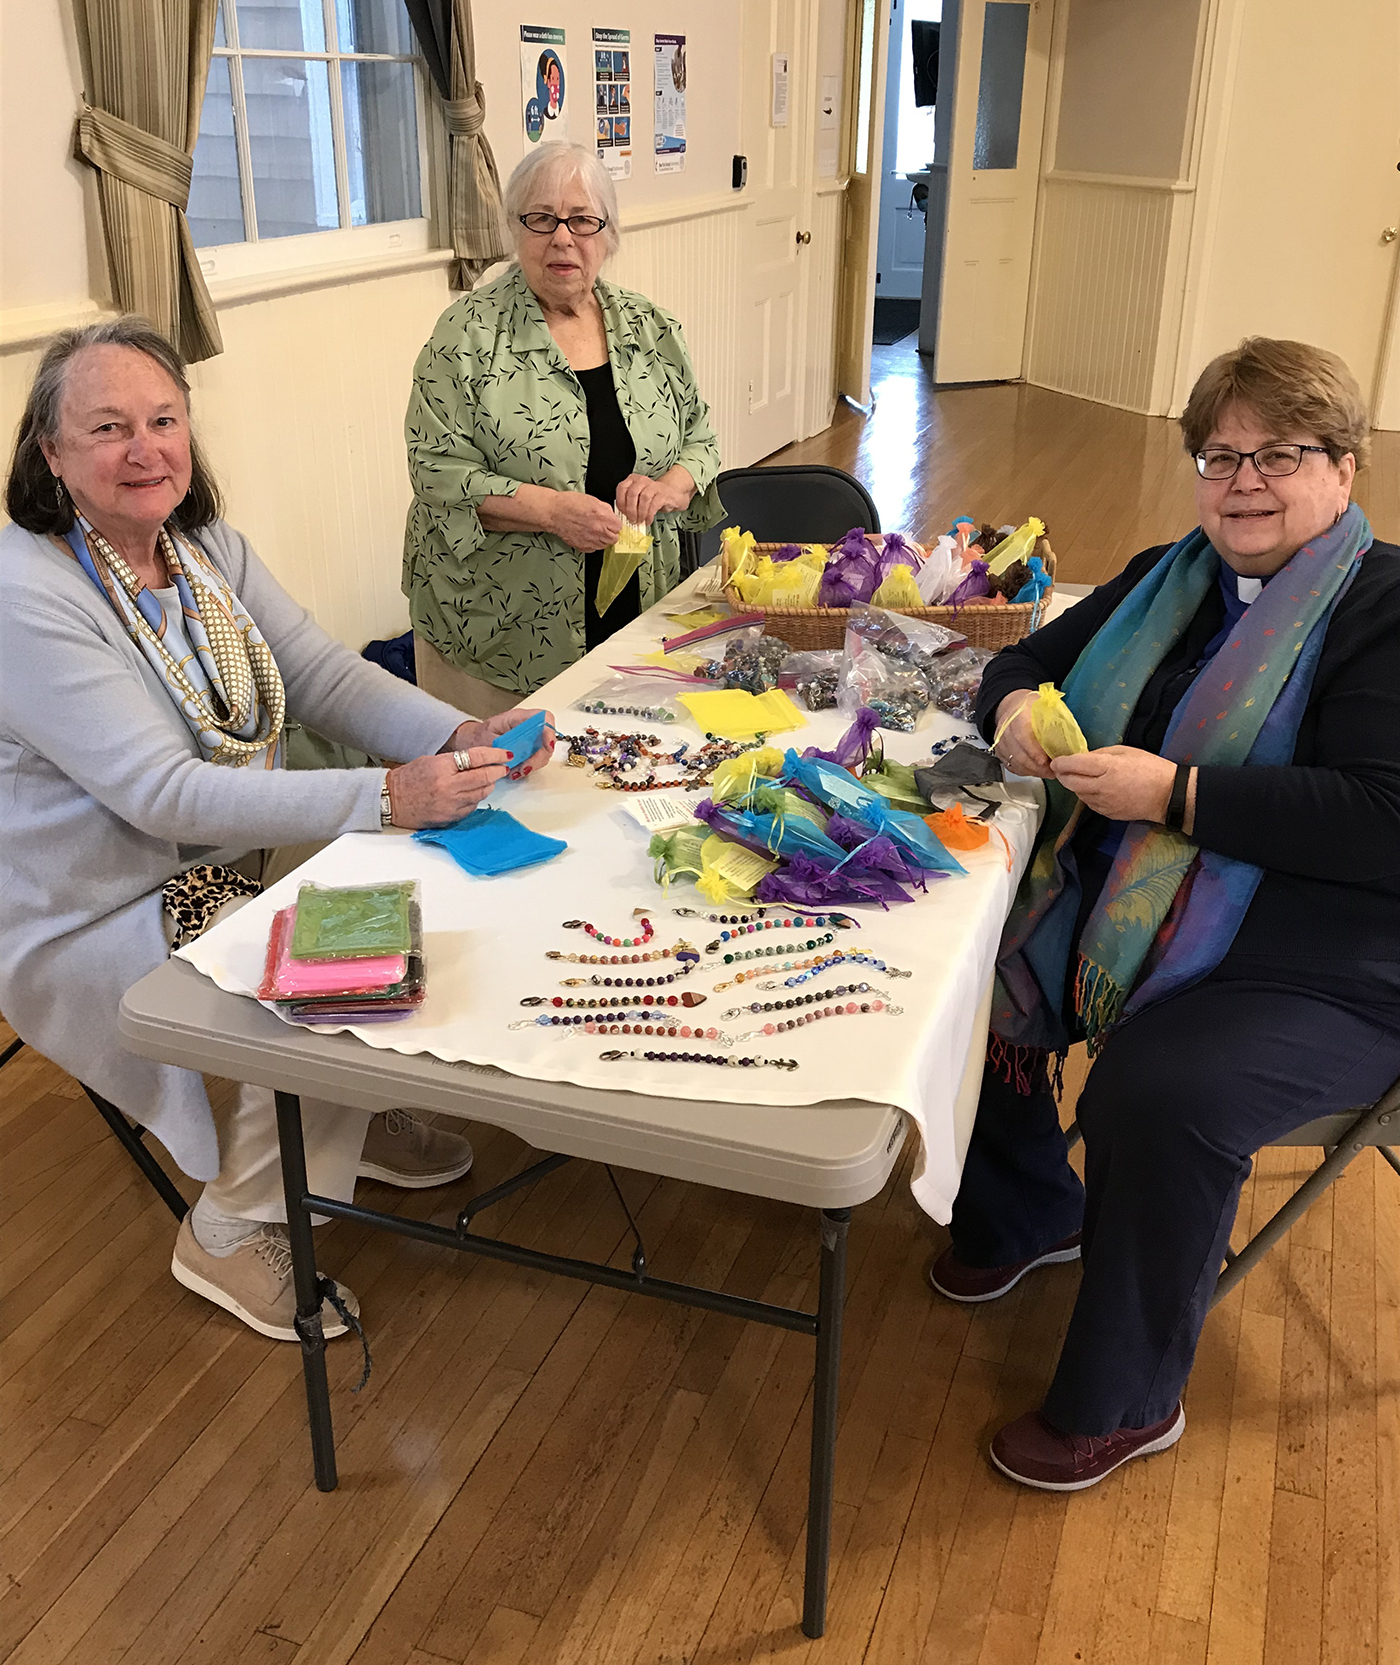 Carol Gilbert, from left, Dorothy Wienecke, and Rev. Joanne Utley package some of the 700 strands of prayer beads made by Hamptons United Methodist Church.